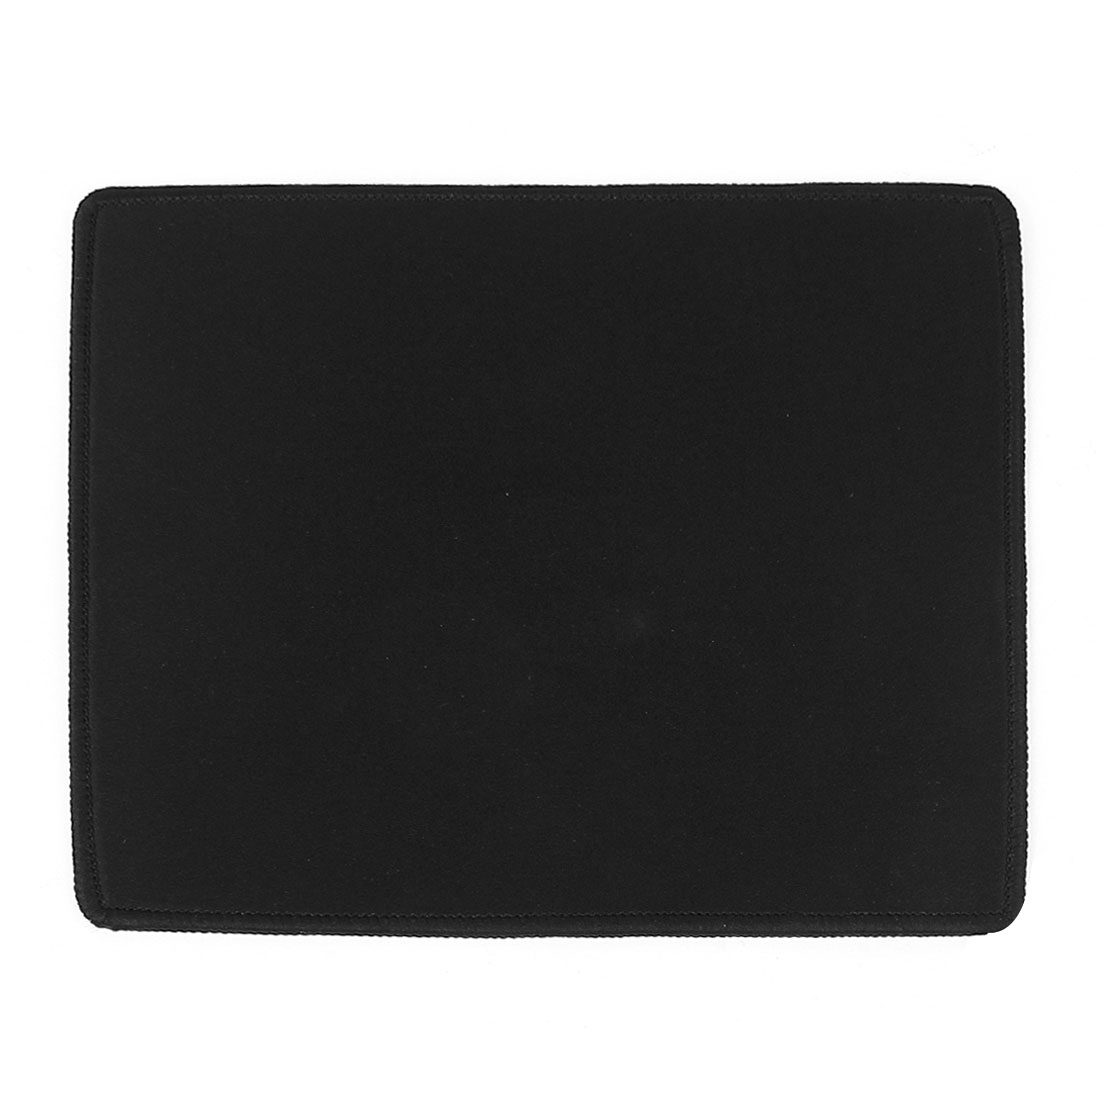 Black 29cmx24.5cm Rectangular Nonslip Soft Neoprene Desktop Gaming Mouse Pad Mat